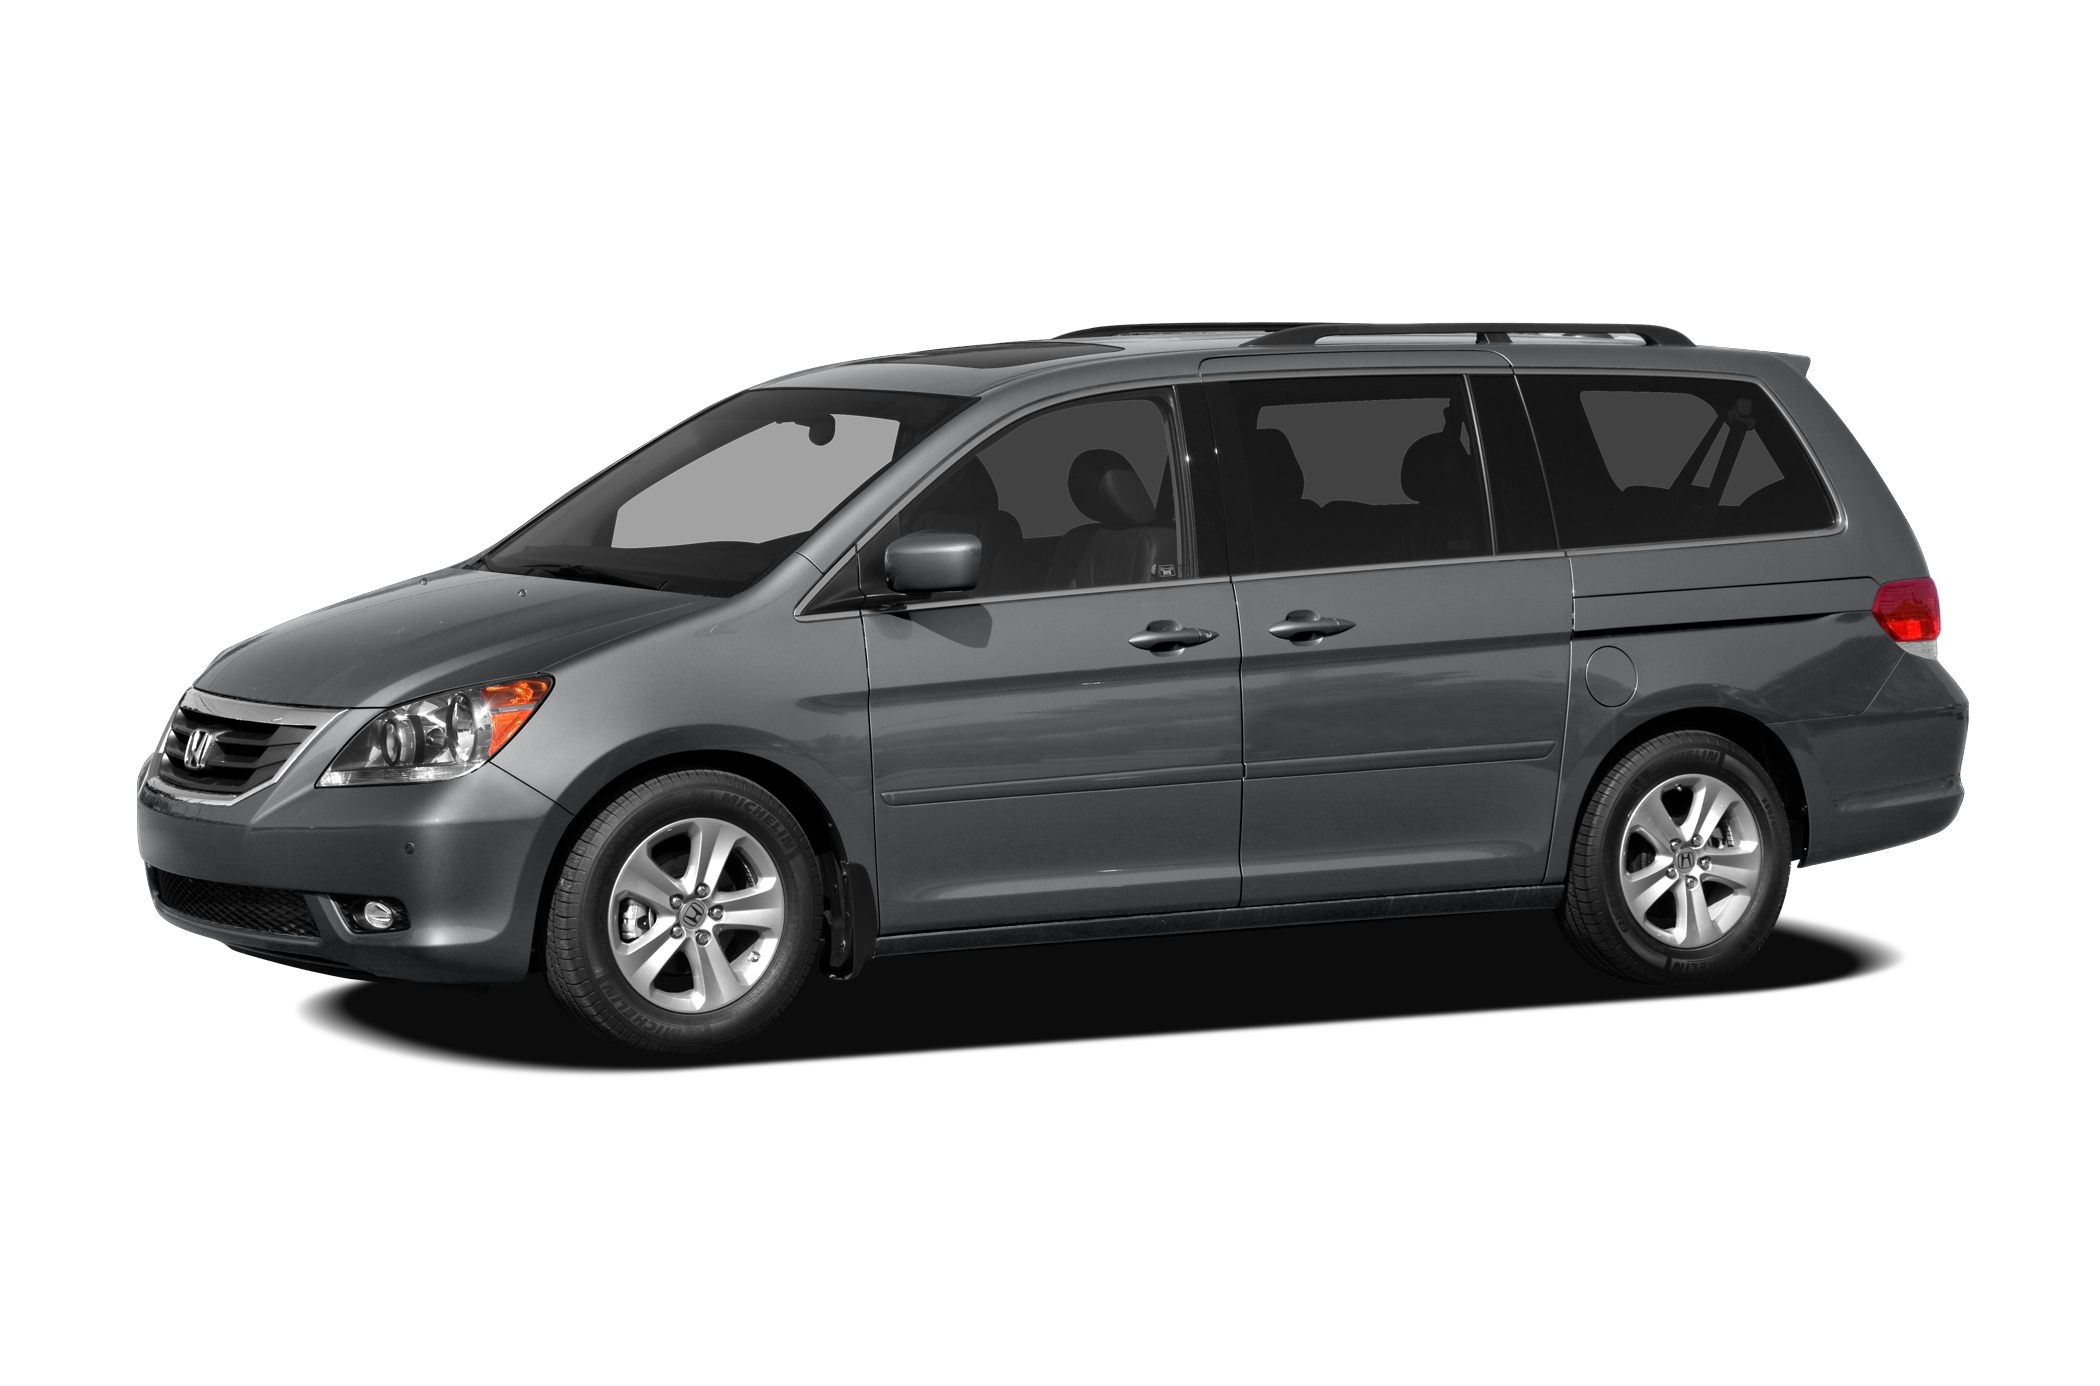 2008 Honda Odyssey Touring Minivan for sale in Levittown for $17,995 with 64,798 miles